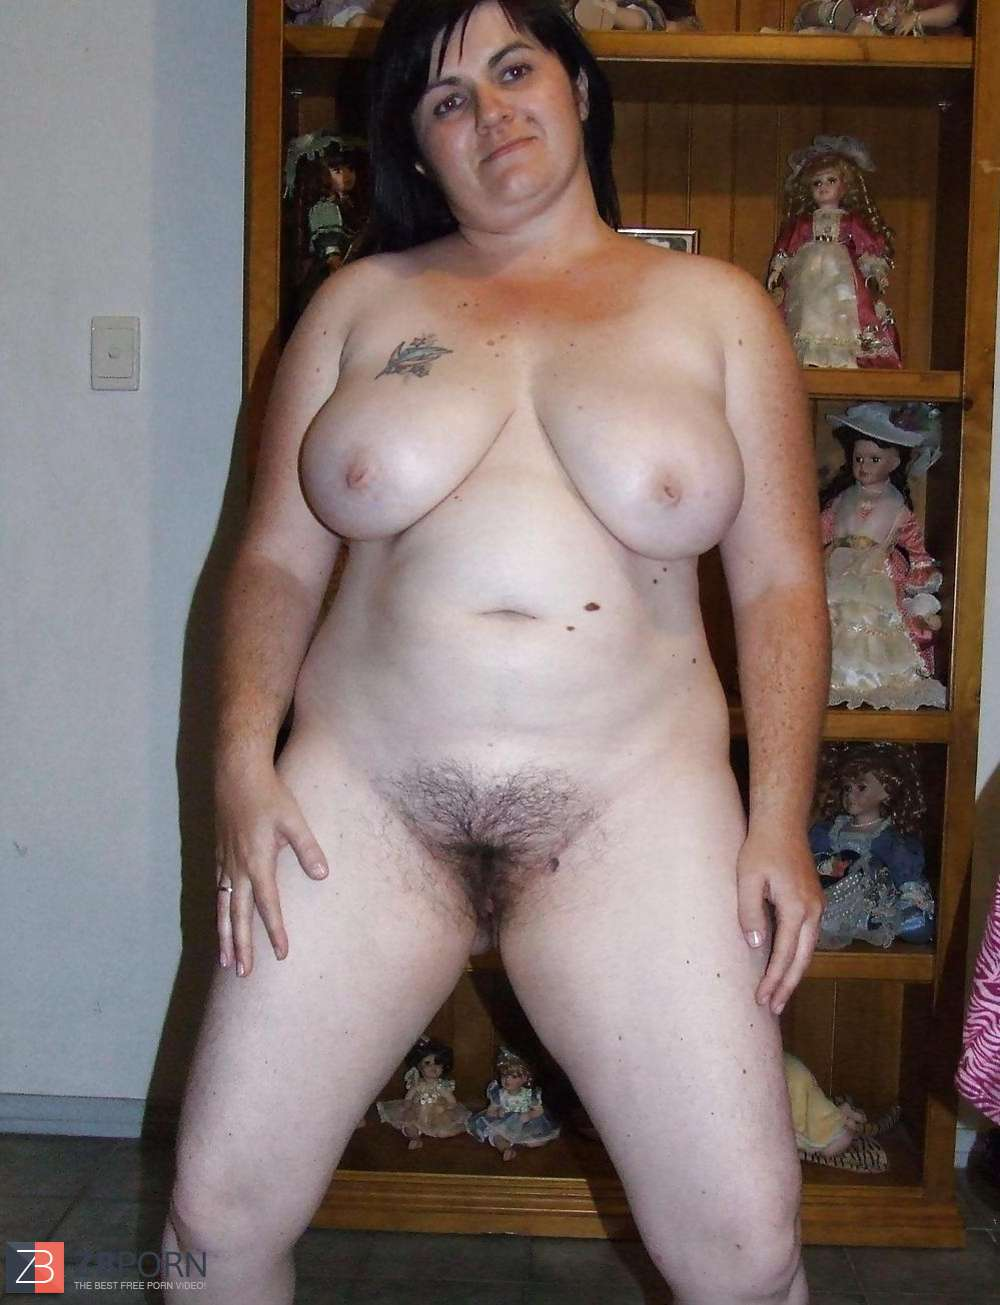 Bbw Porn Videos old chubby free porn videos - nude pics. comments: 4